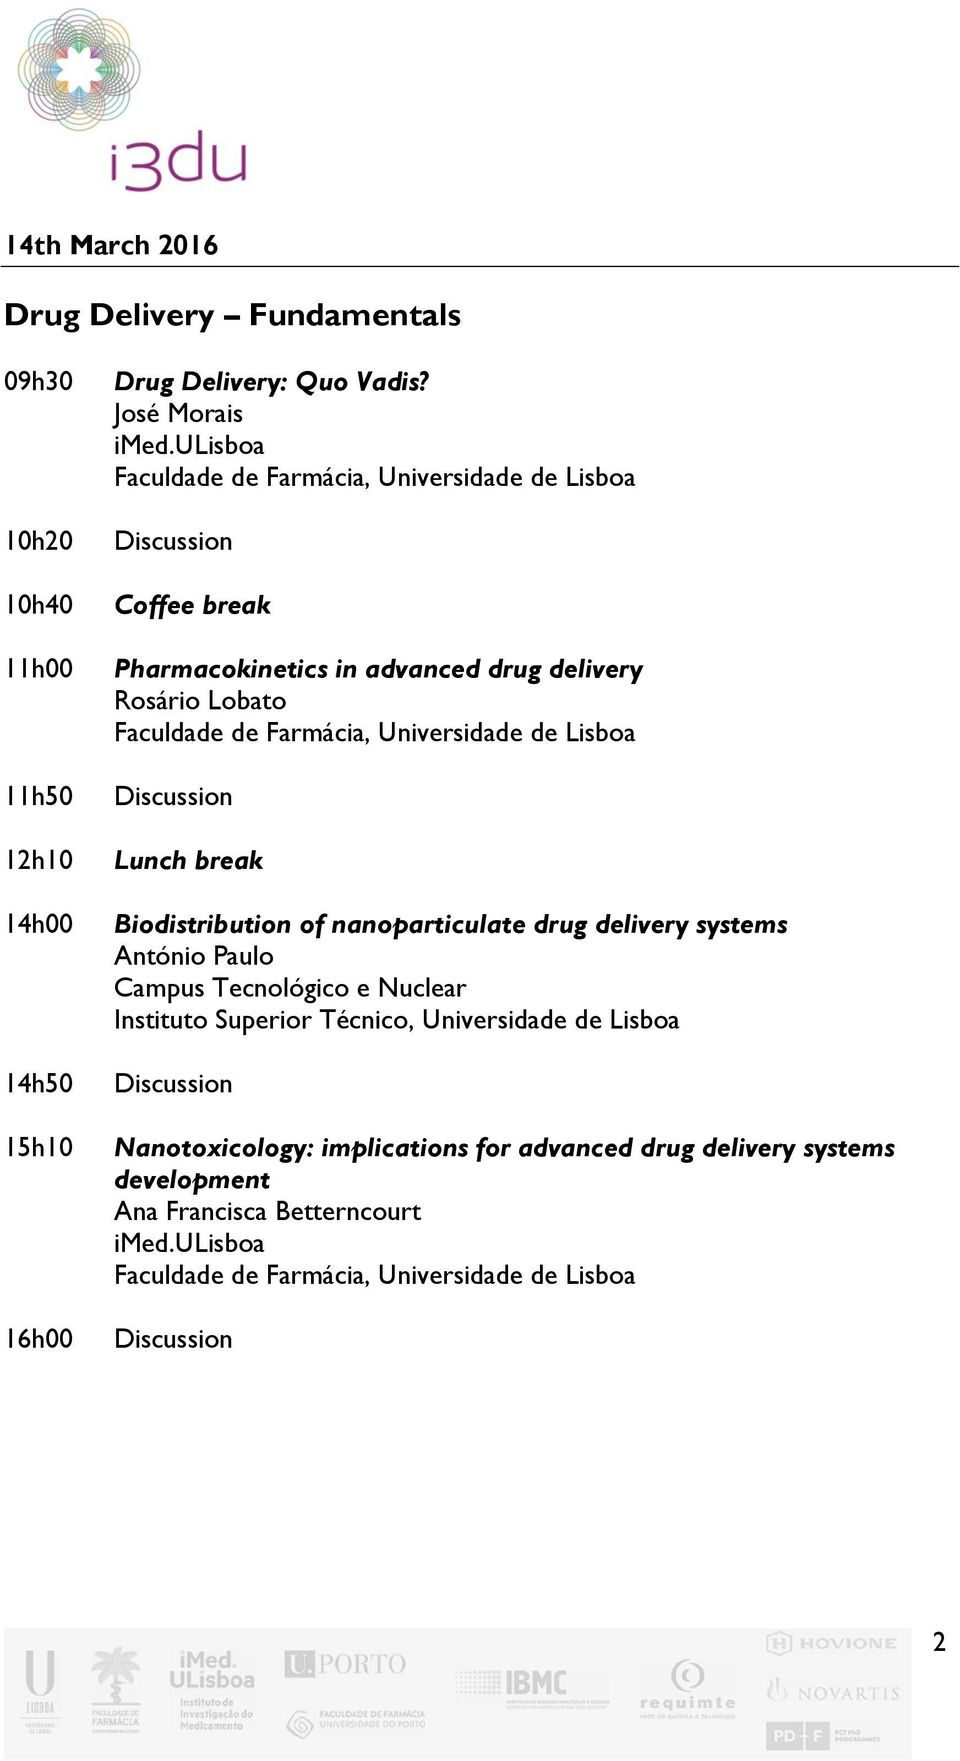 José Morais Pharmacokinetics in advanced drug delivery Rosário Lobato Biodistribution of nanoparticulate drug